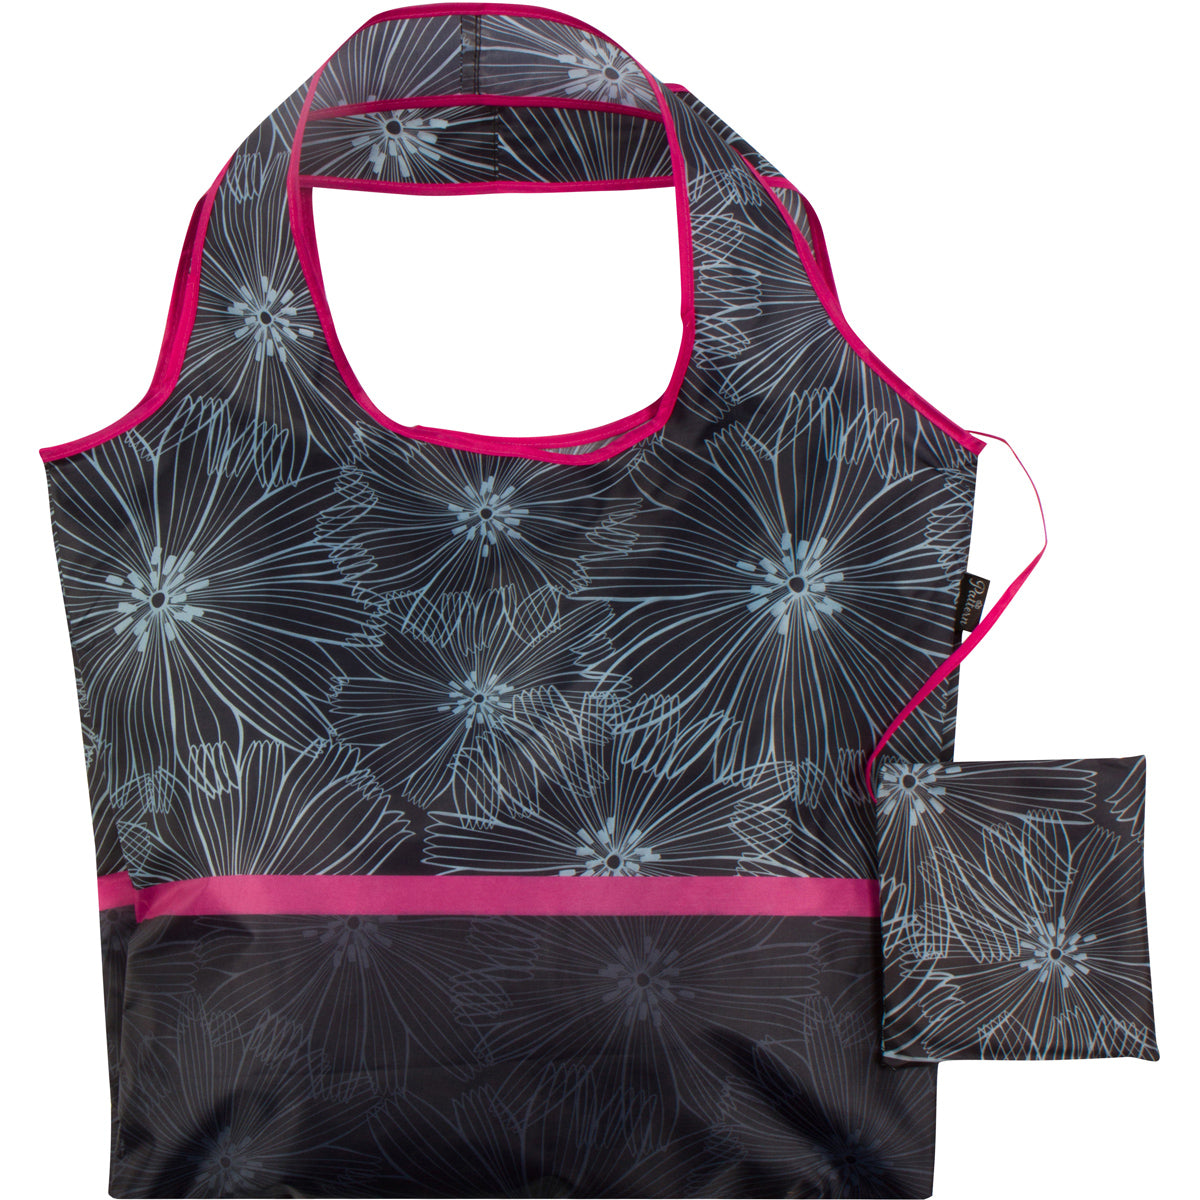 Beach Floral Reusable Folding Bag